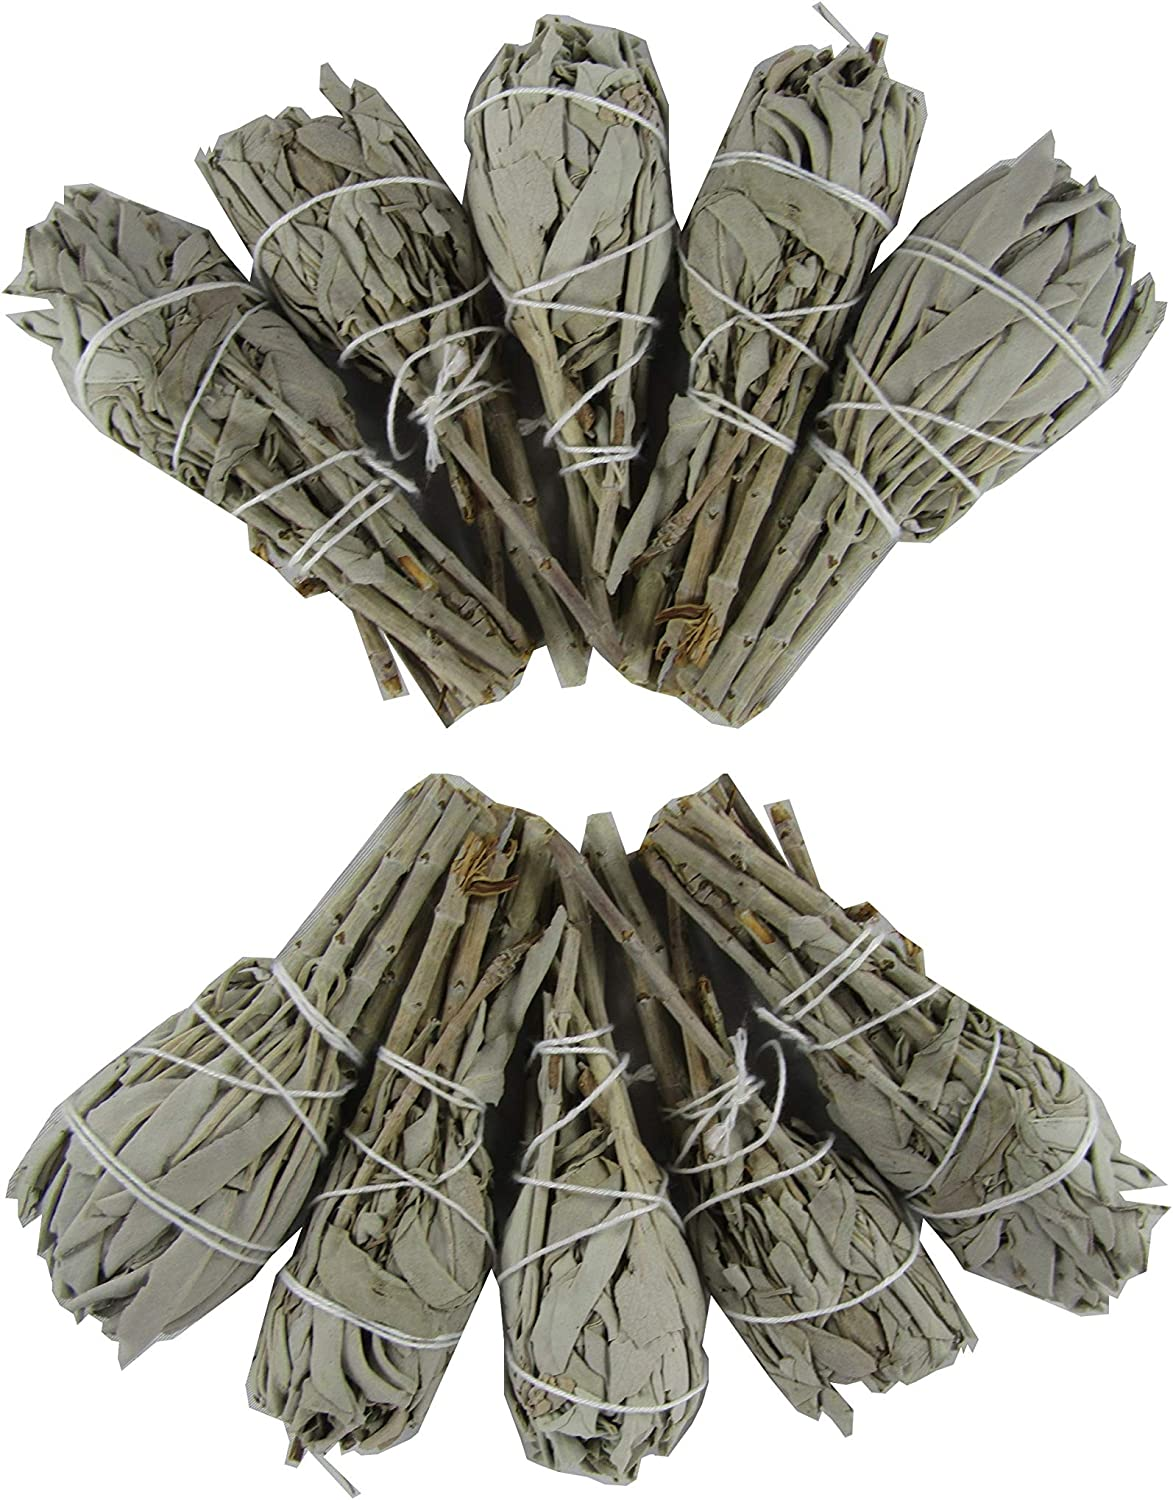 4-Inch Smudge Sticks for Cleansing Rituals CircuitOffice California White Sage Wands Healing Pack of 3 Meditation and Wicca Metaphysical Purifying